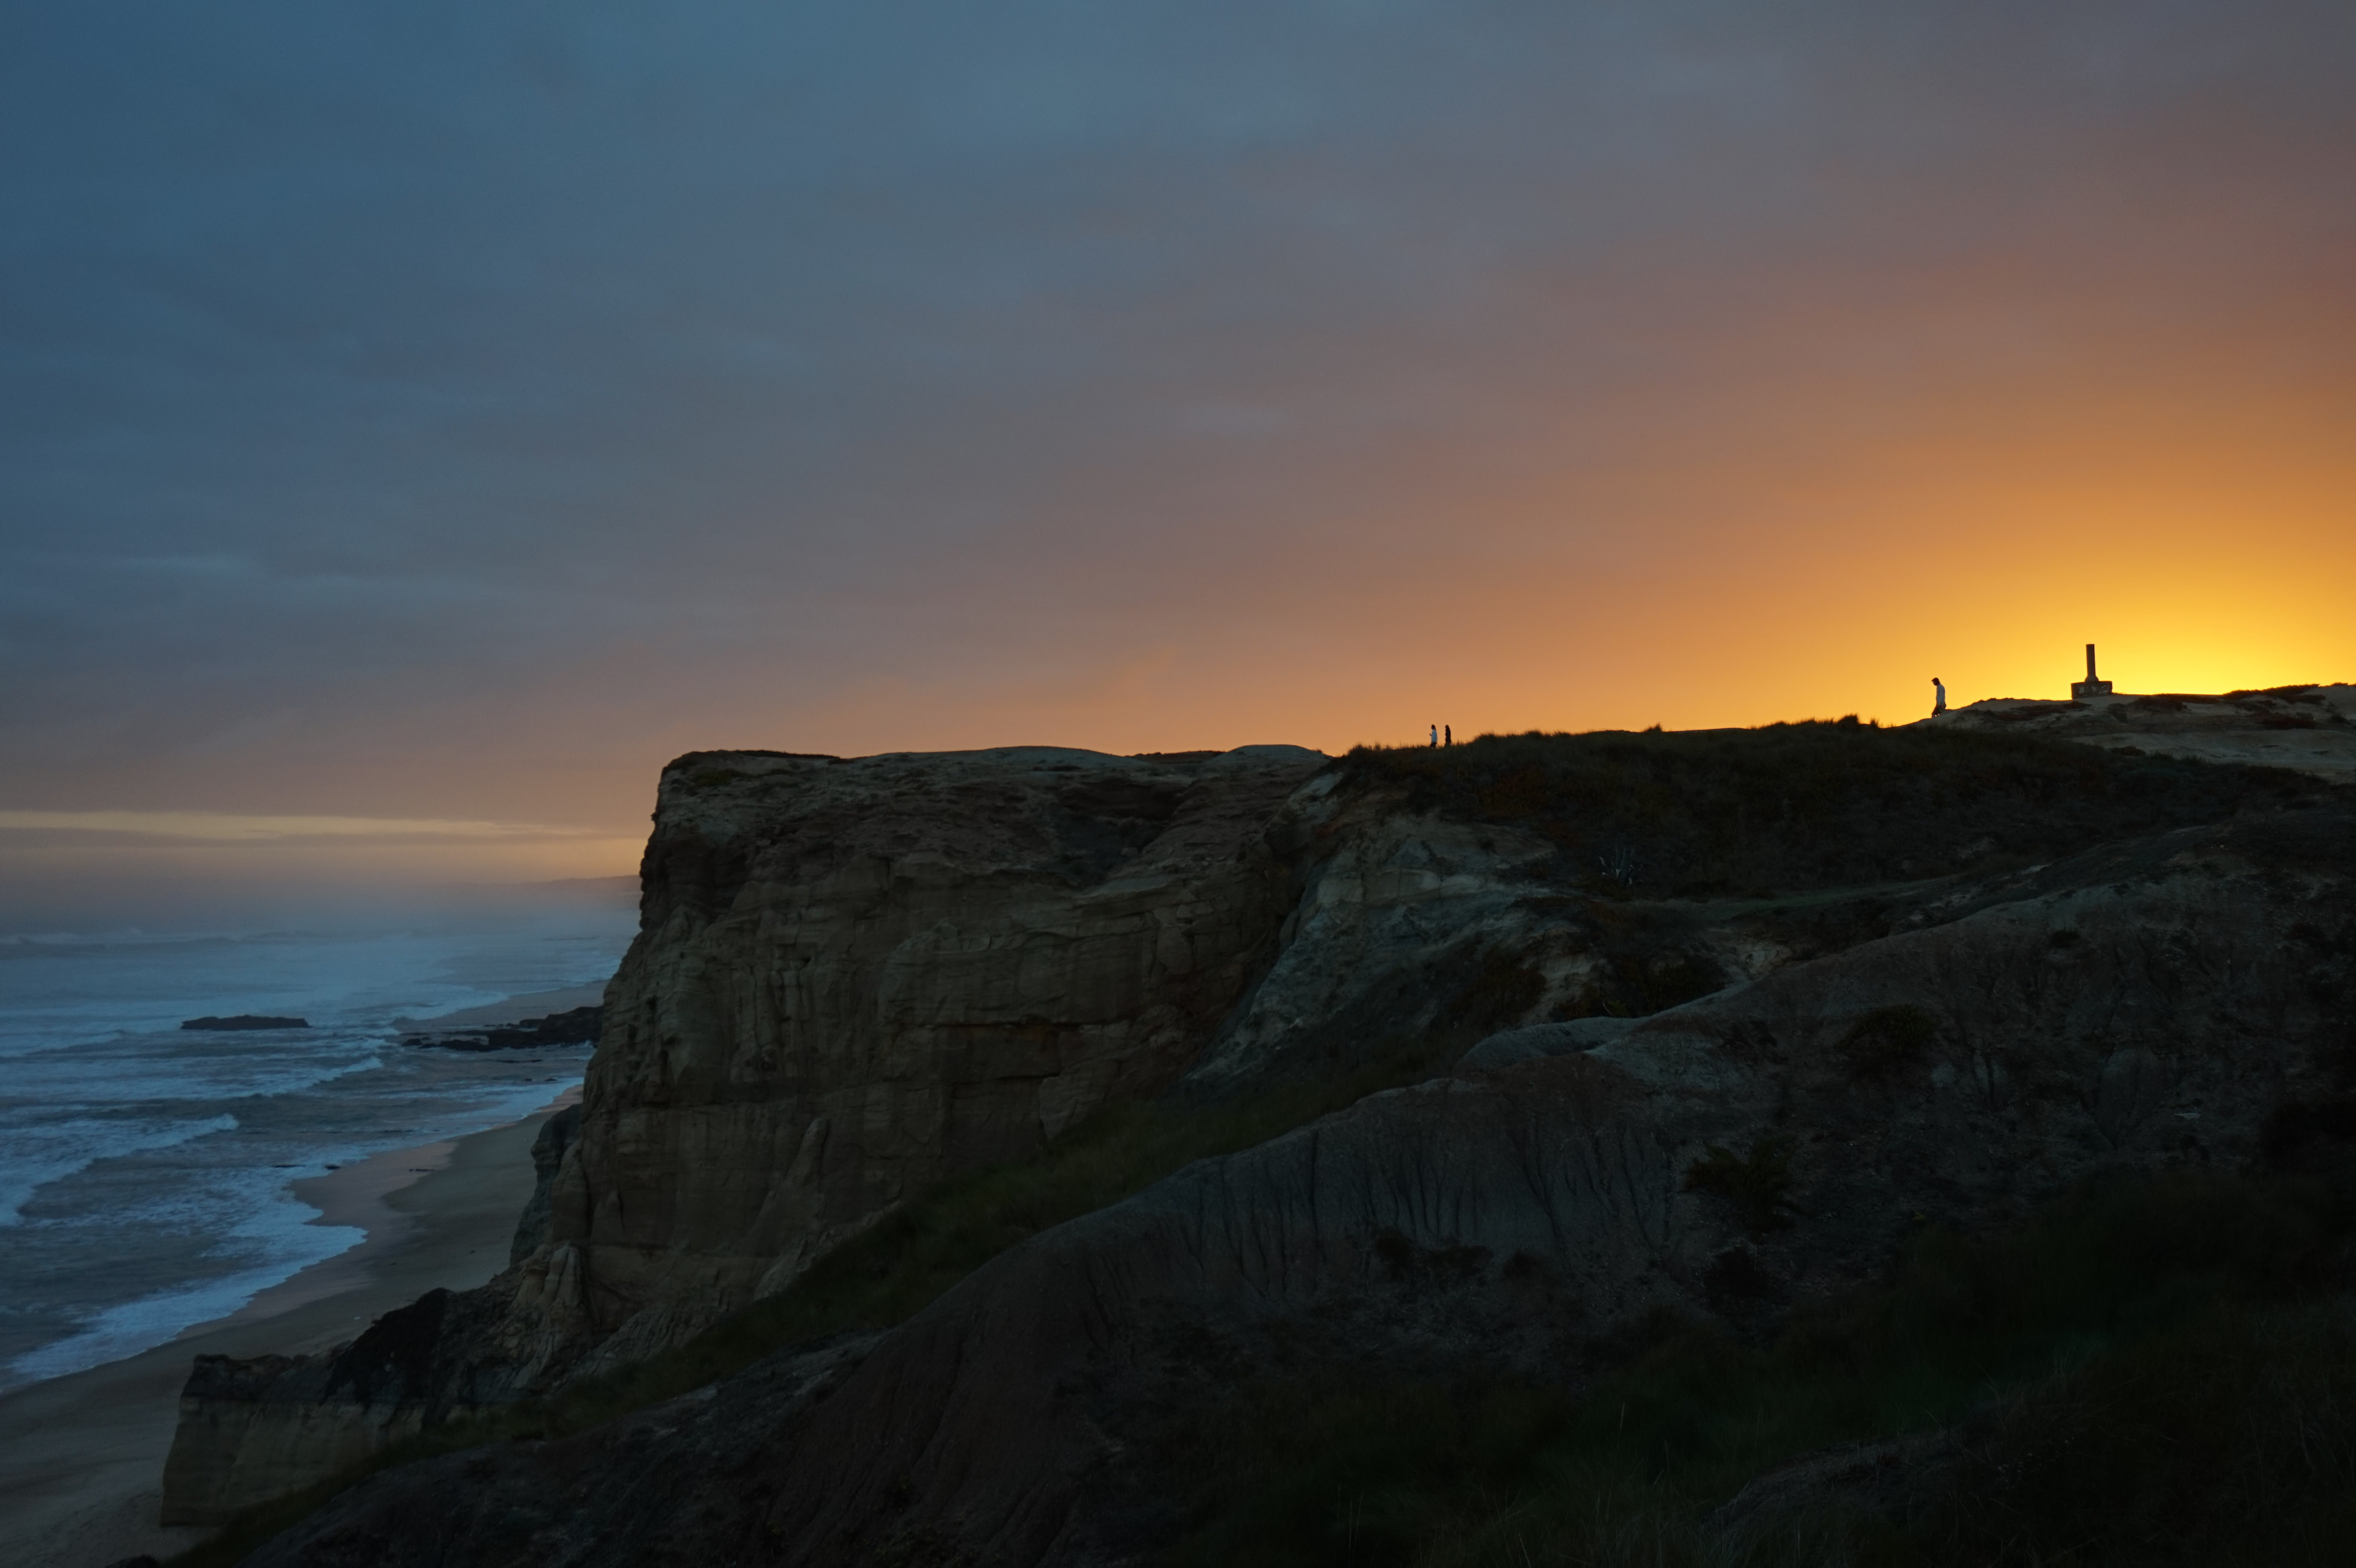 Landscape shot featuring beach and ocean at the foot of  humongous cliff in Peniche